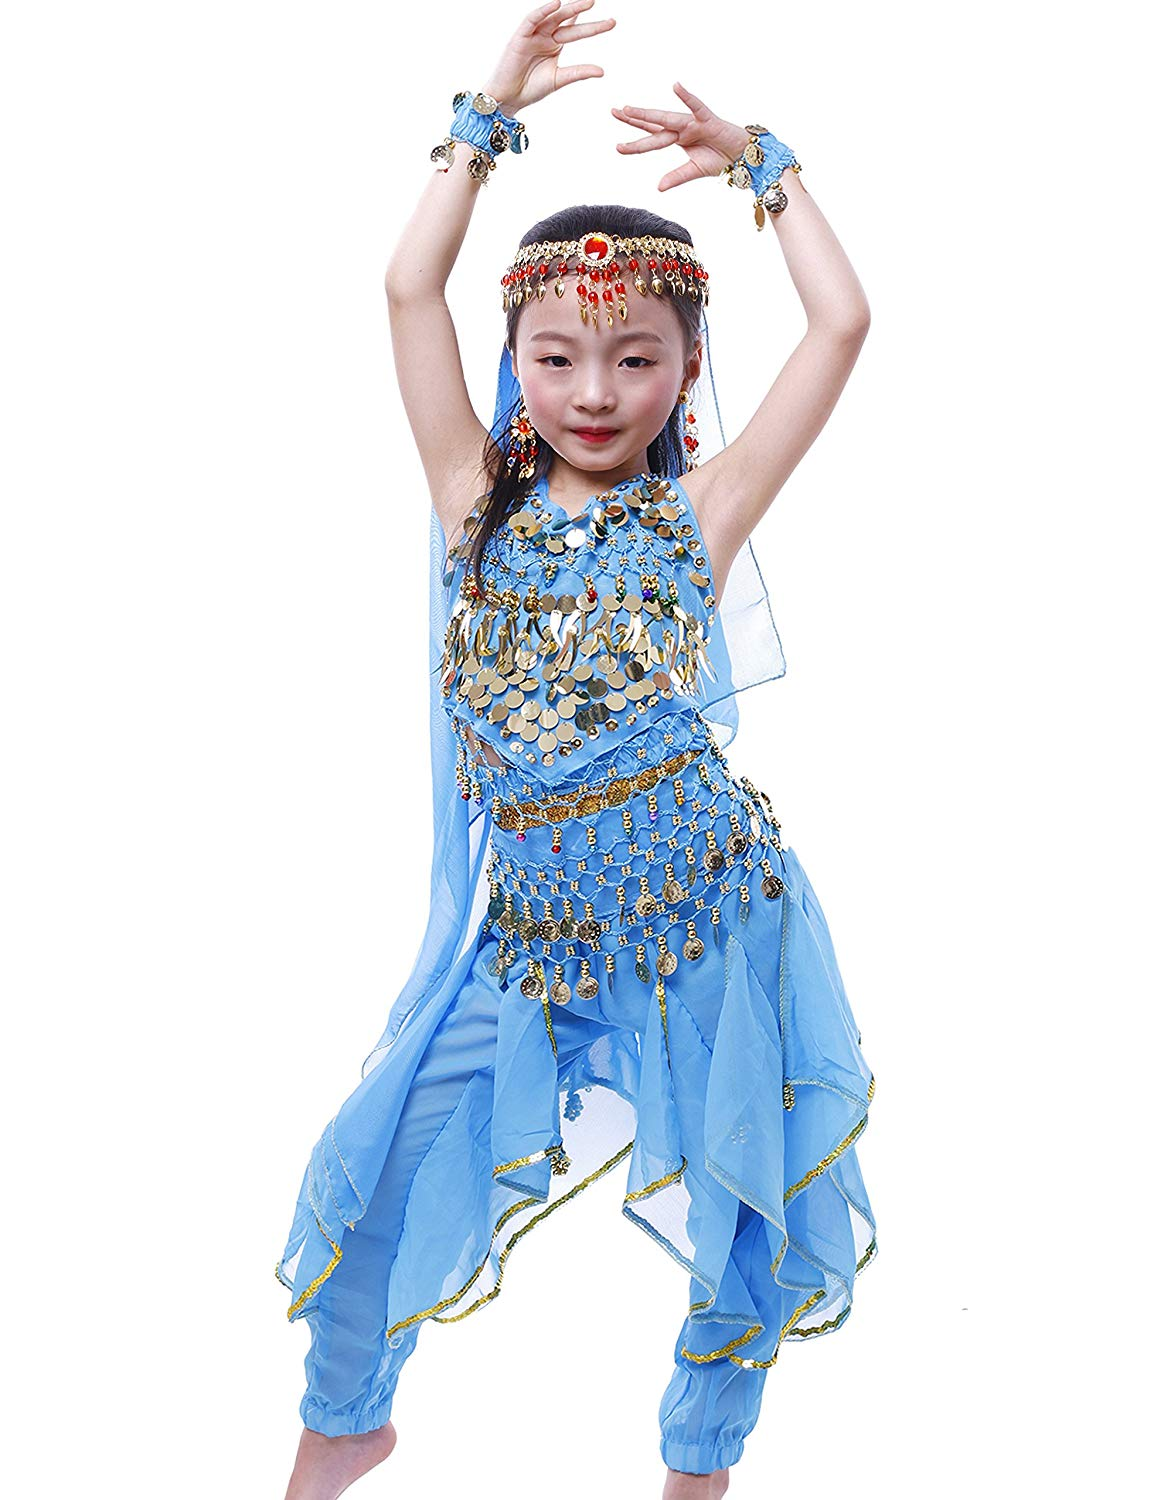 dae3f4b137643 Get Quotations · Astage Kids Girl Active India Belly Dancer Costume  Princess Halloween Wear All Sets